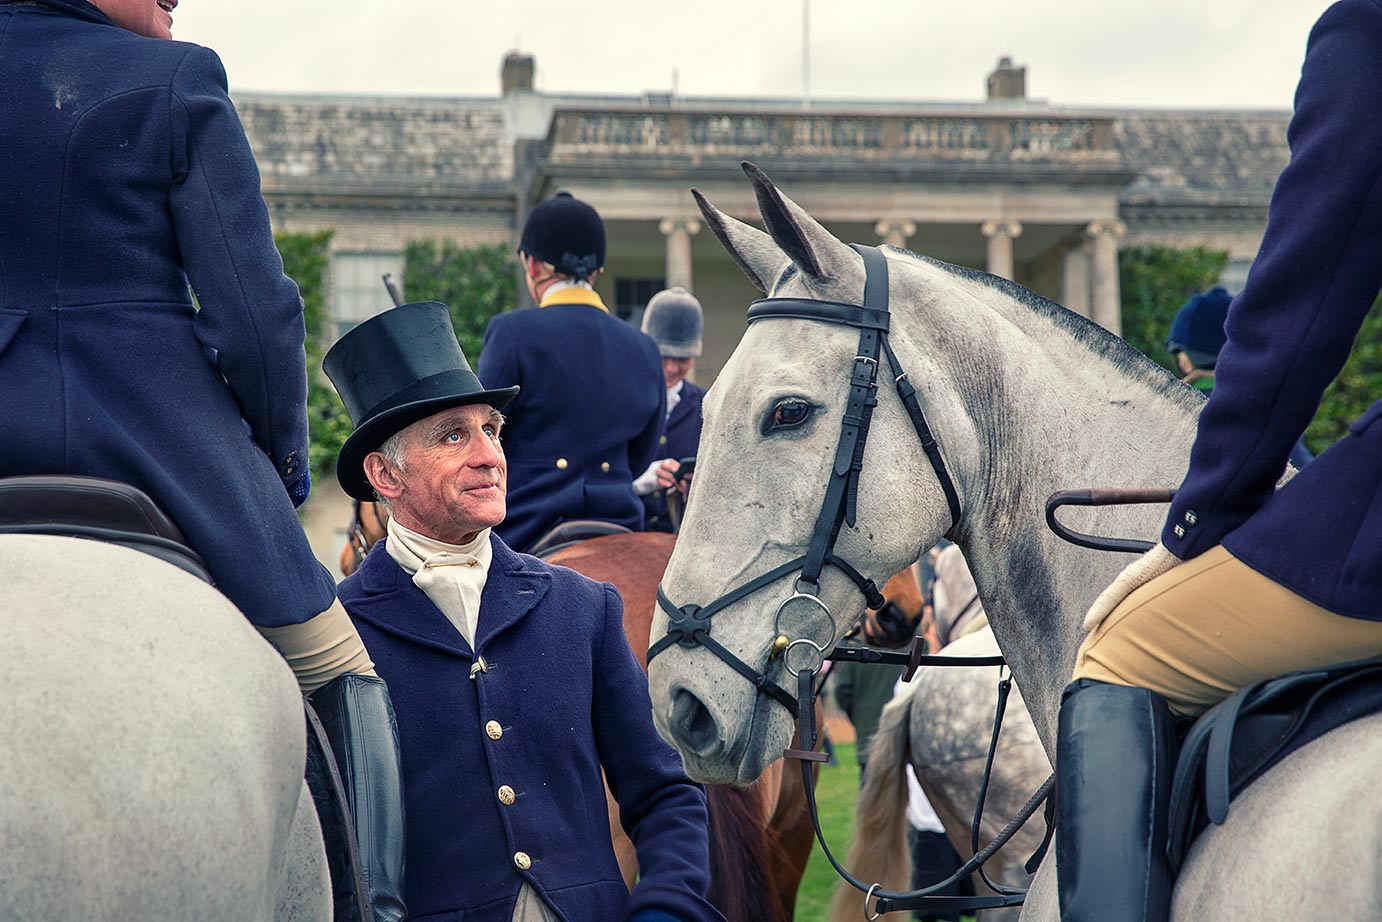 Rider wearing top hat at Goodwood House, Charlton Hunt